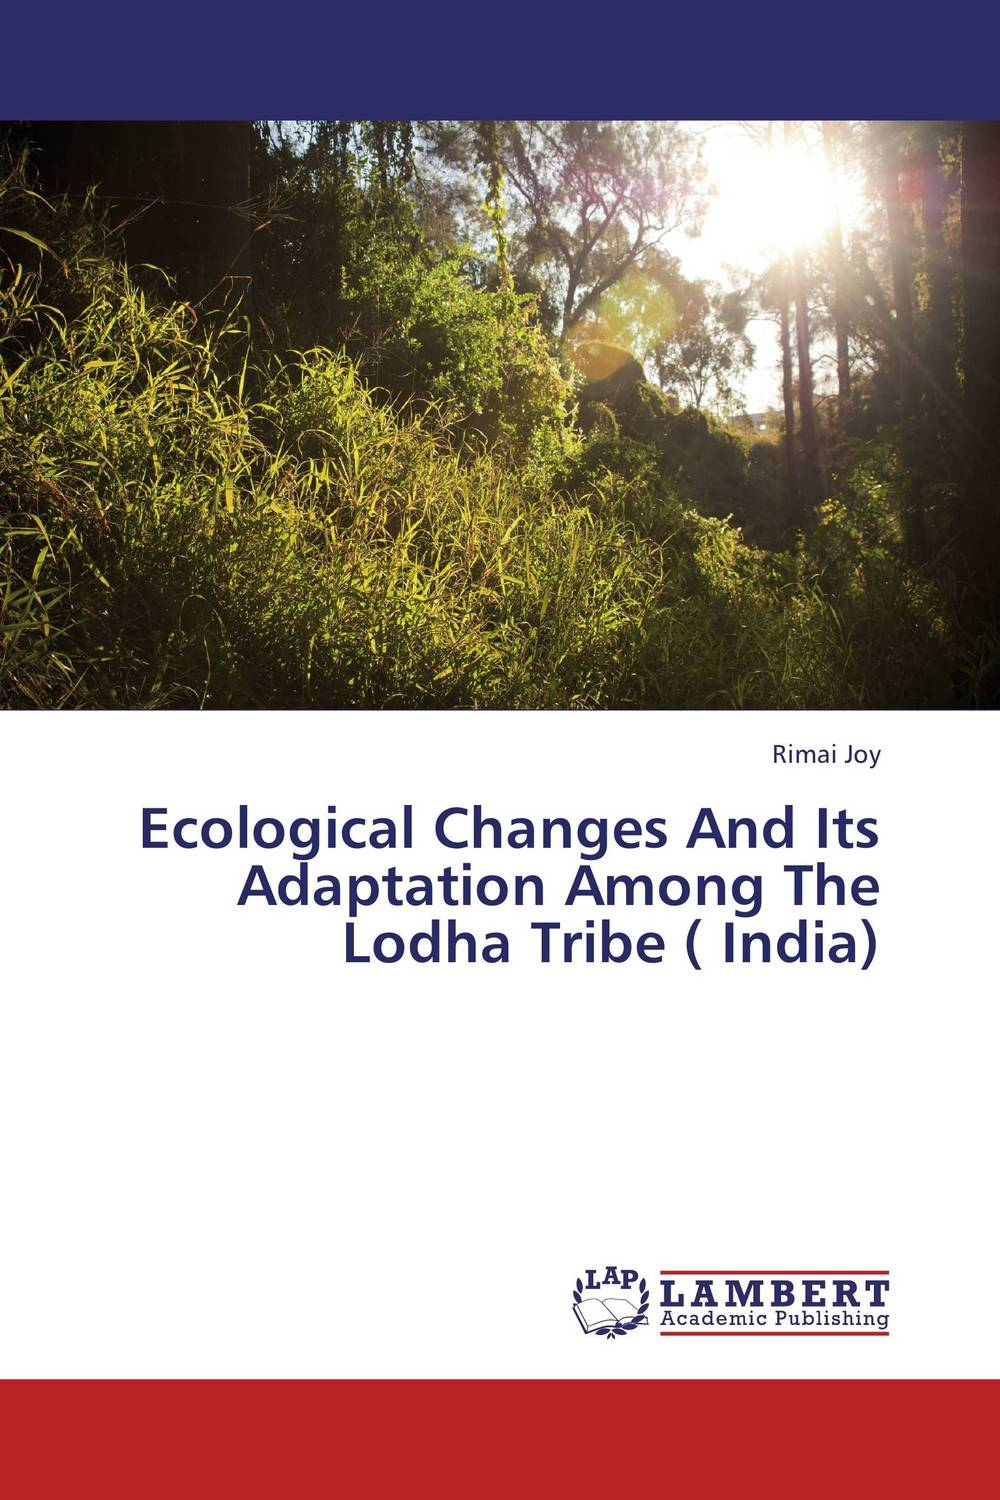 Ecological Changes And Its Adaptation Among The Lodha Tribe ( India) holland adaptation in natural